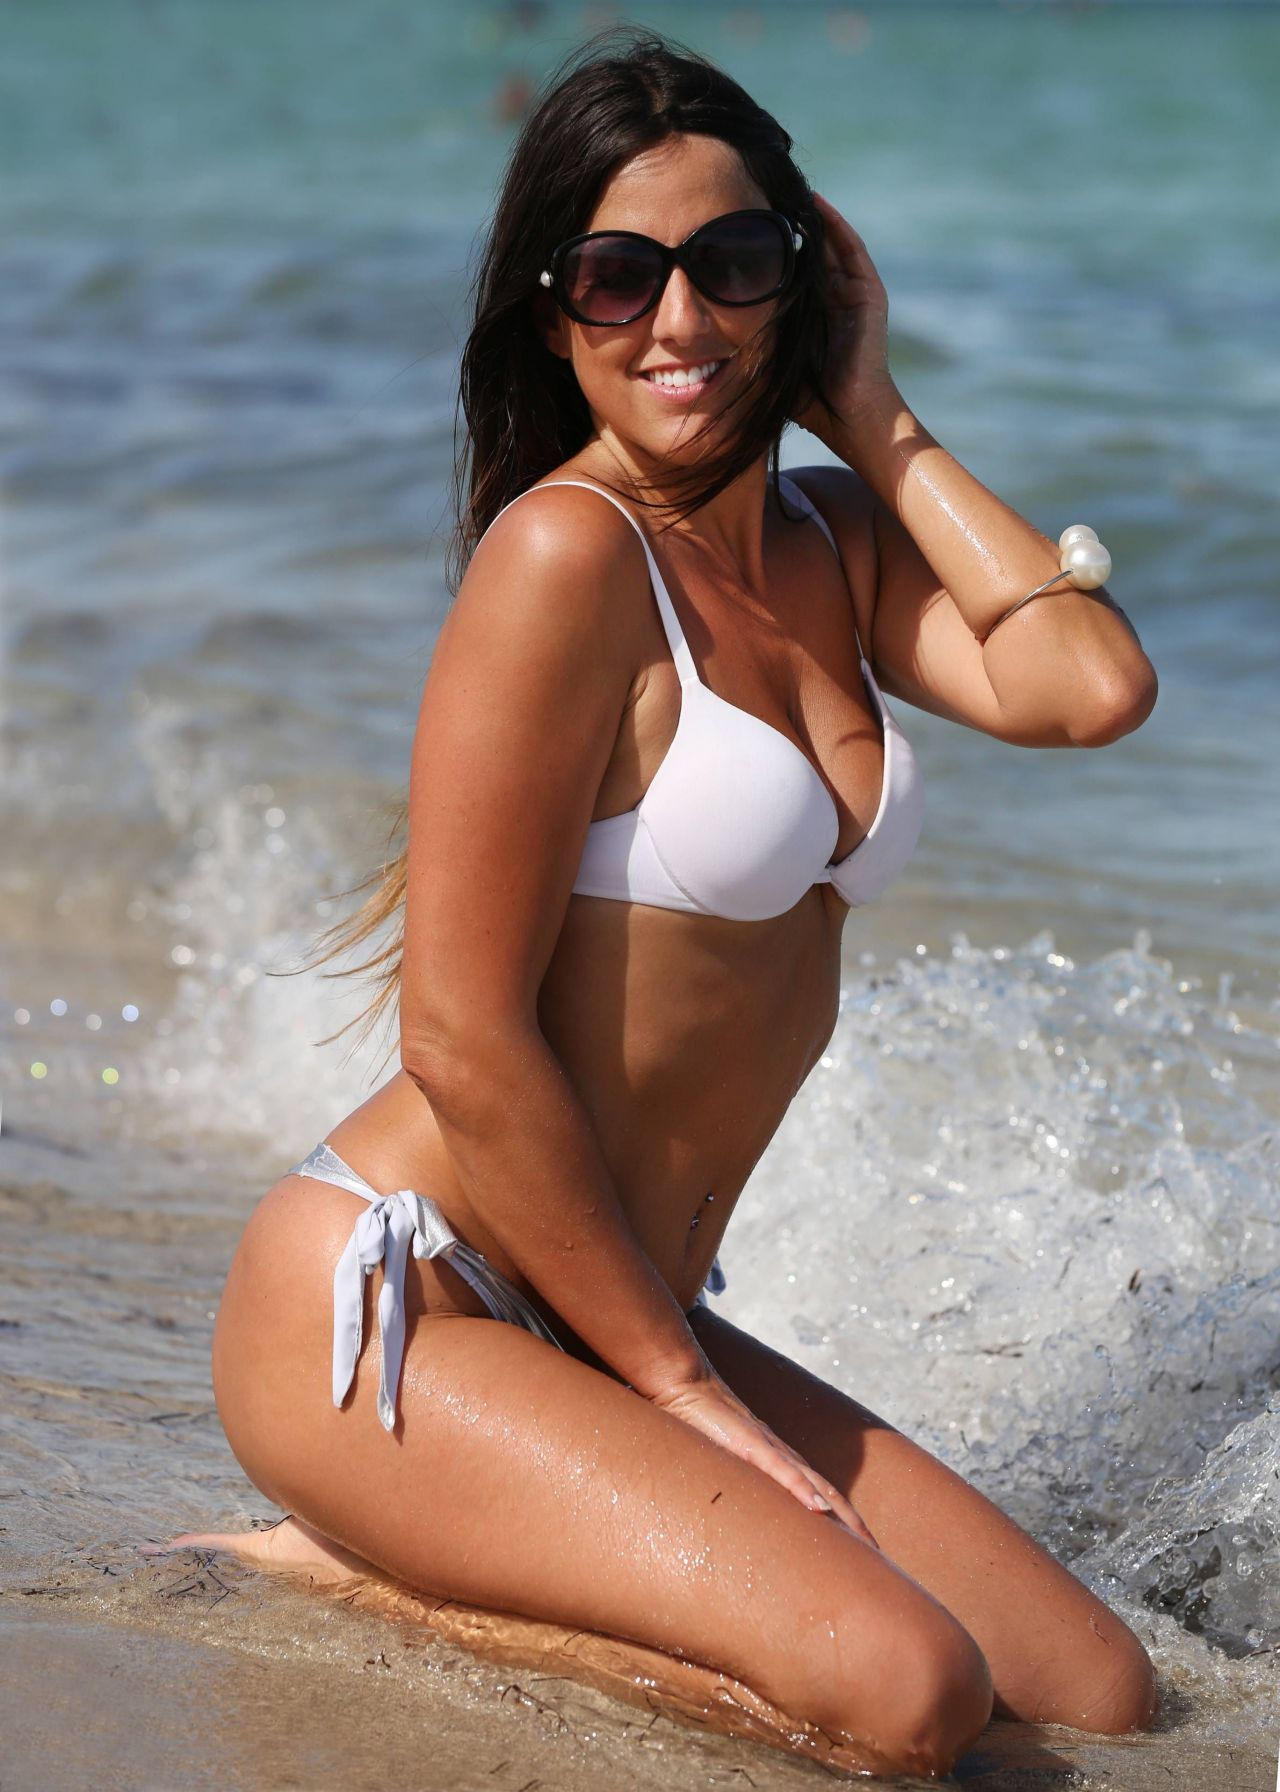 Claudia Romani Hot In Bikini Miami Beach August 2014